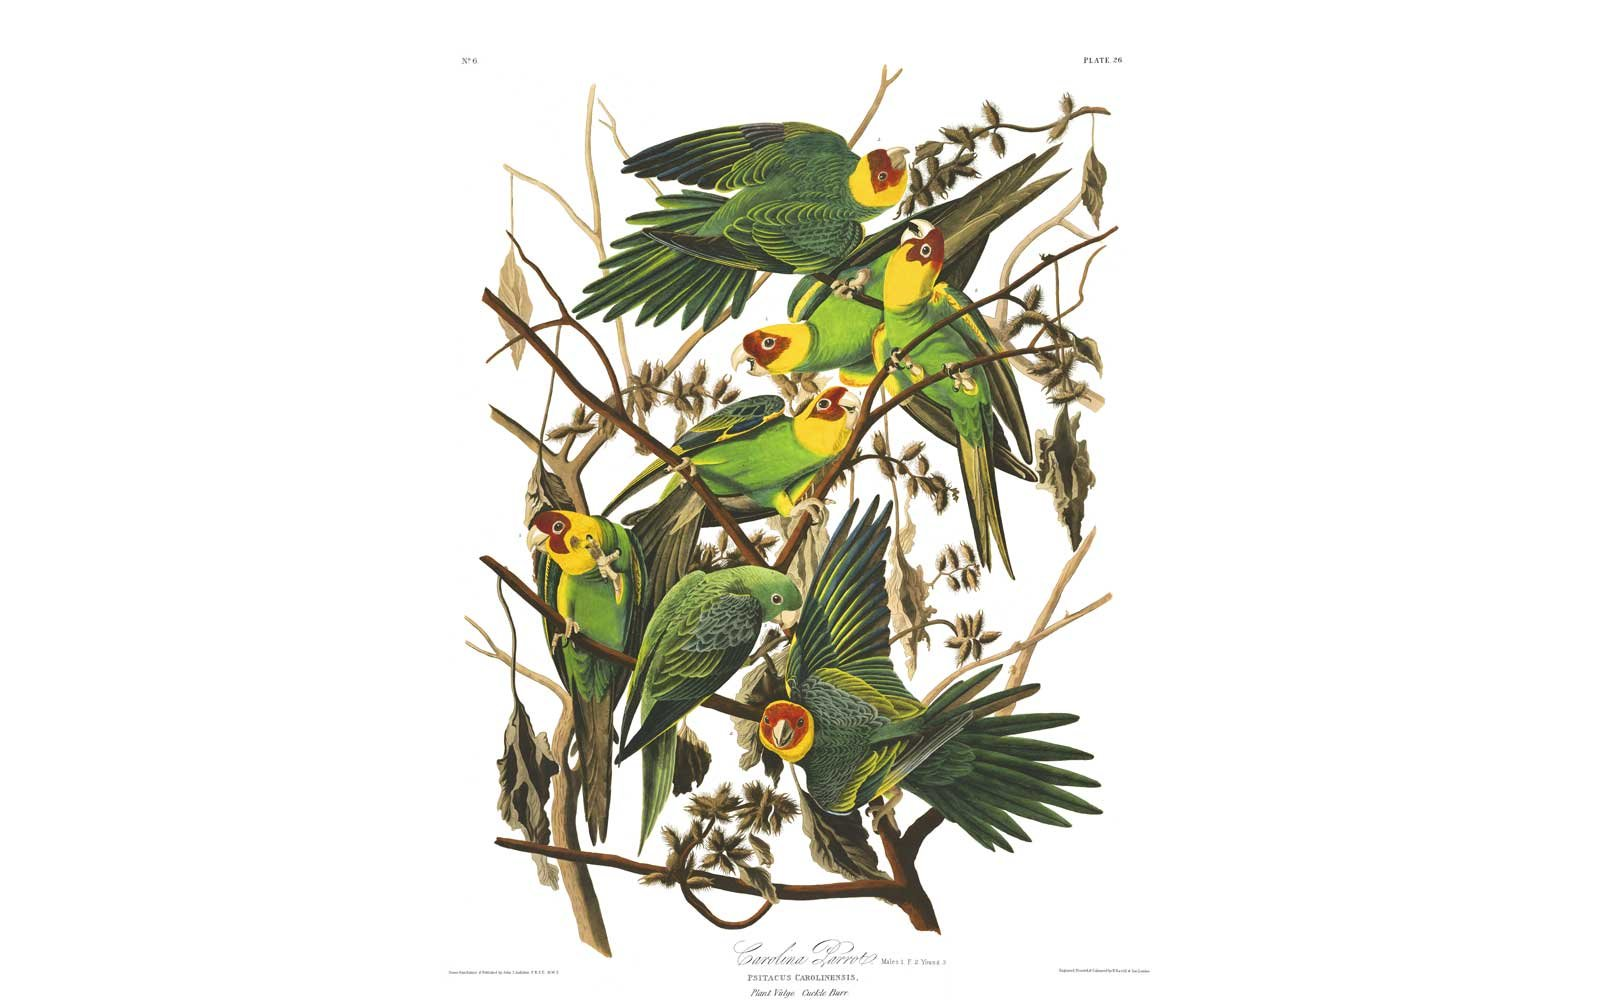 Audubon Birds of America - Carolina Parrot